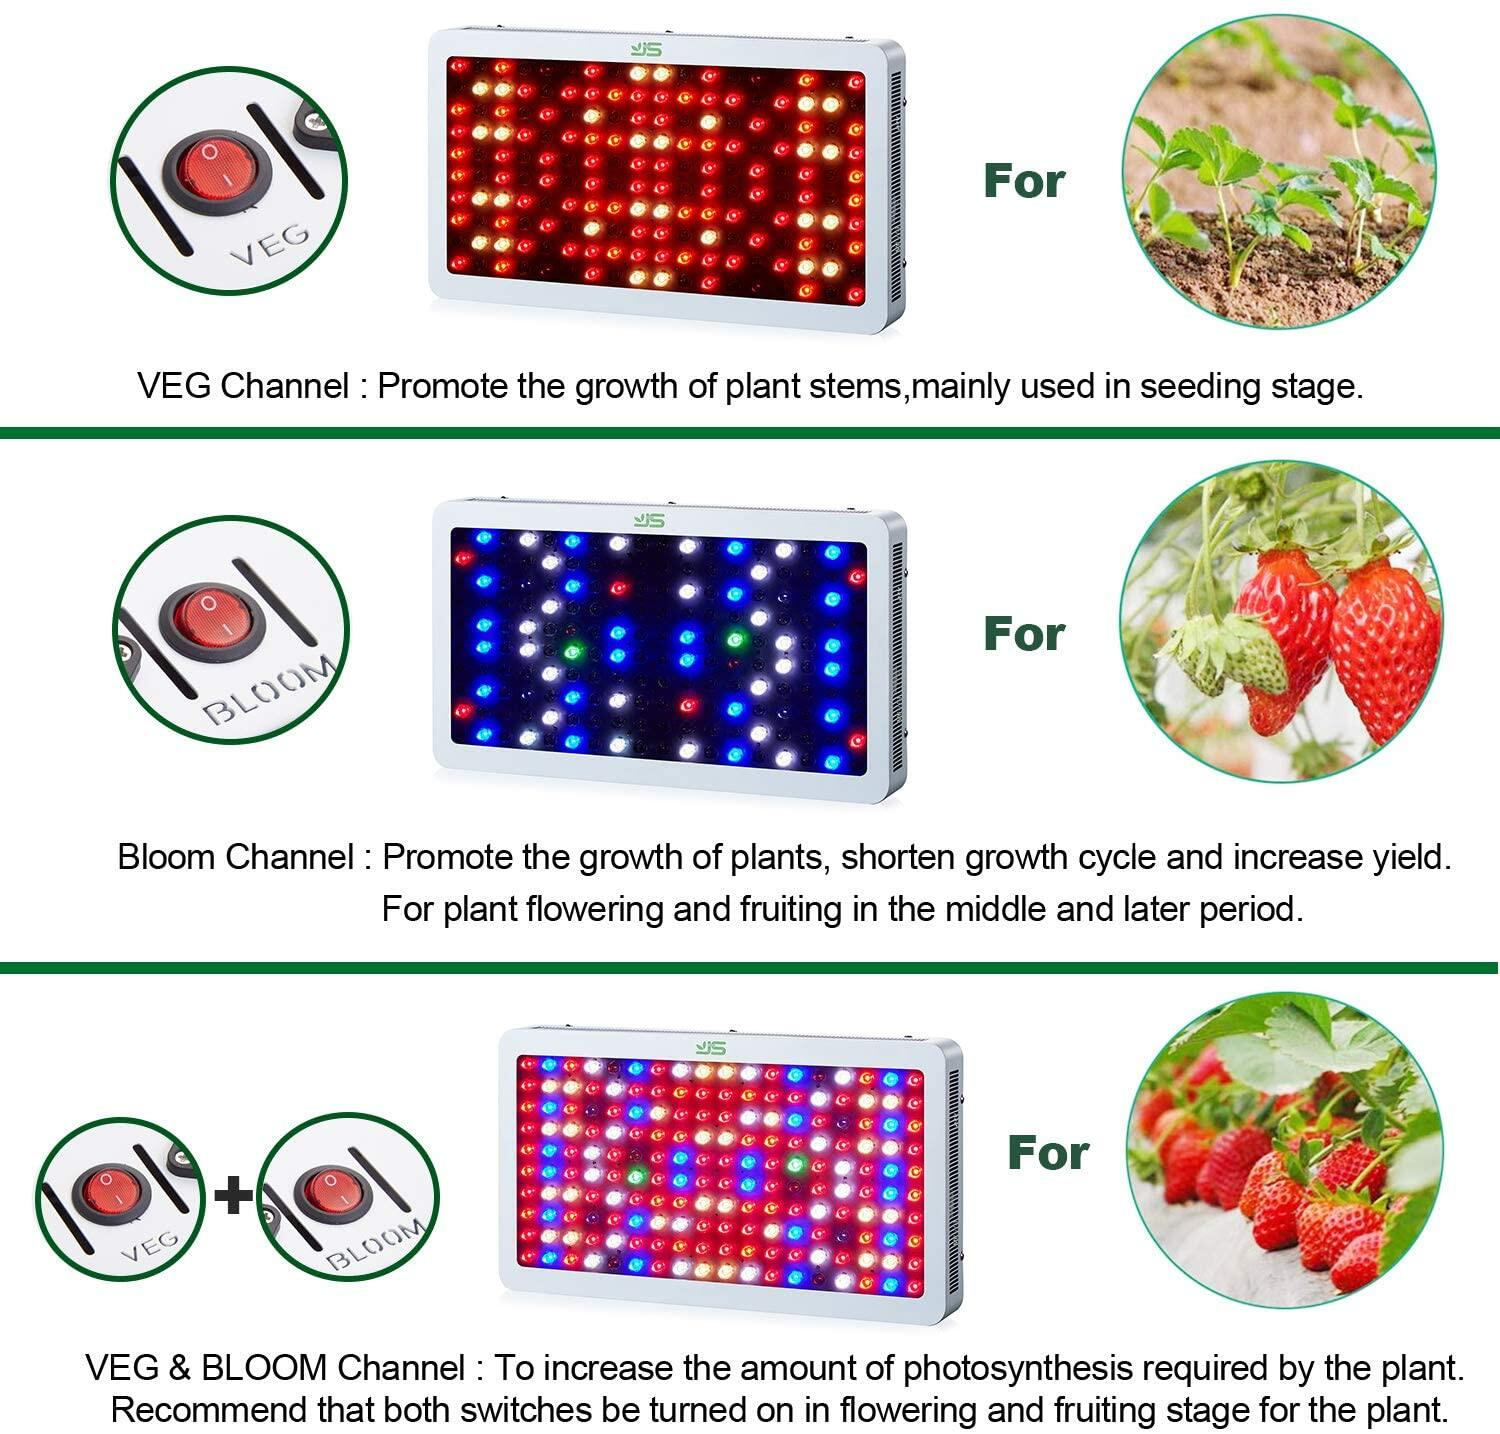 JS LED Grow Light, 300W Chips Grow Plant Lamp with Red Blue UV IR Light for Indoor Grow Box Greenhouse Plant Vegetable Flower Growth JS LED Grow Light, LED Plant Grow Light at smart-join.com LED Grow Light